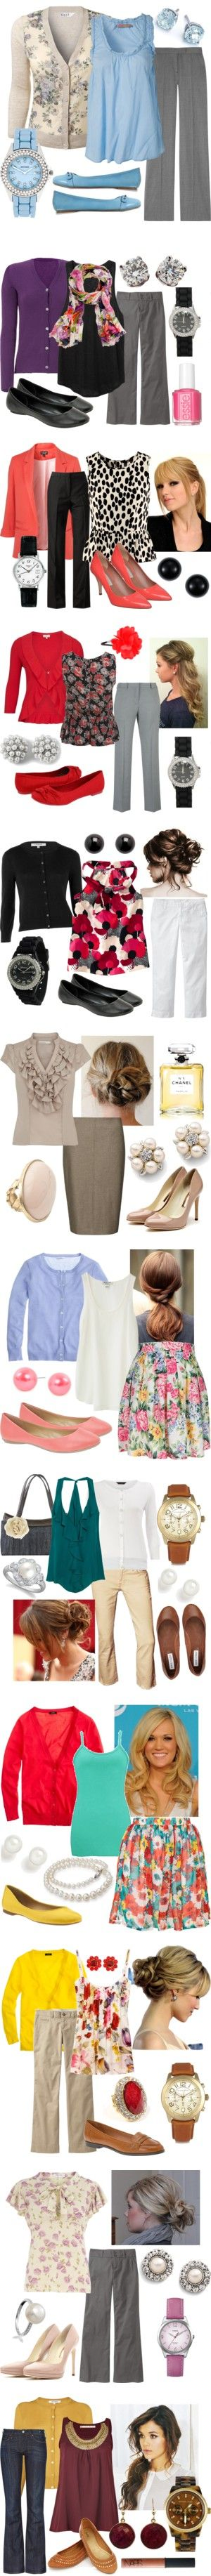 """Work Outfits"" by qtpiekelso on Polyvore"